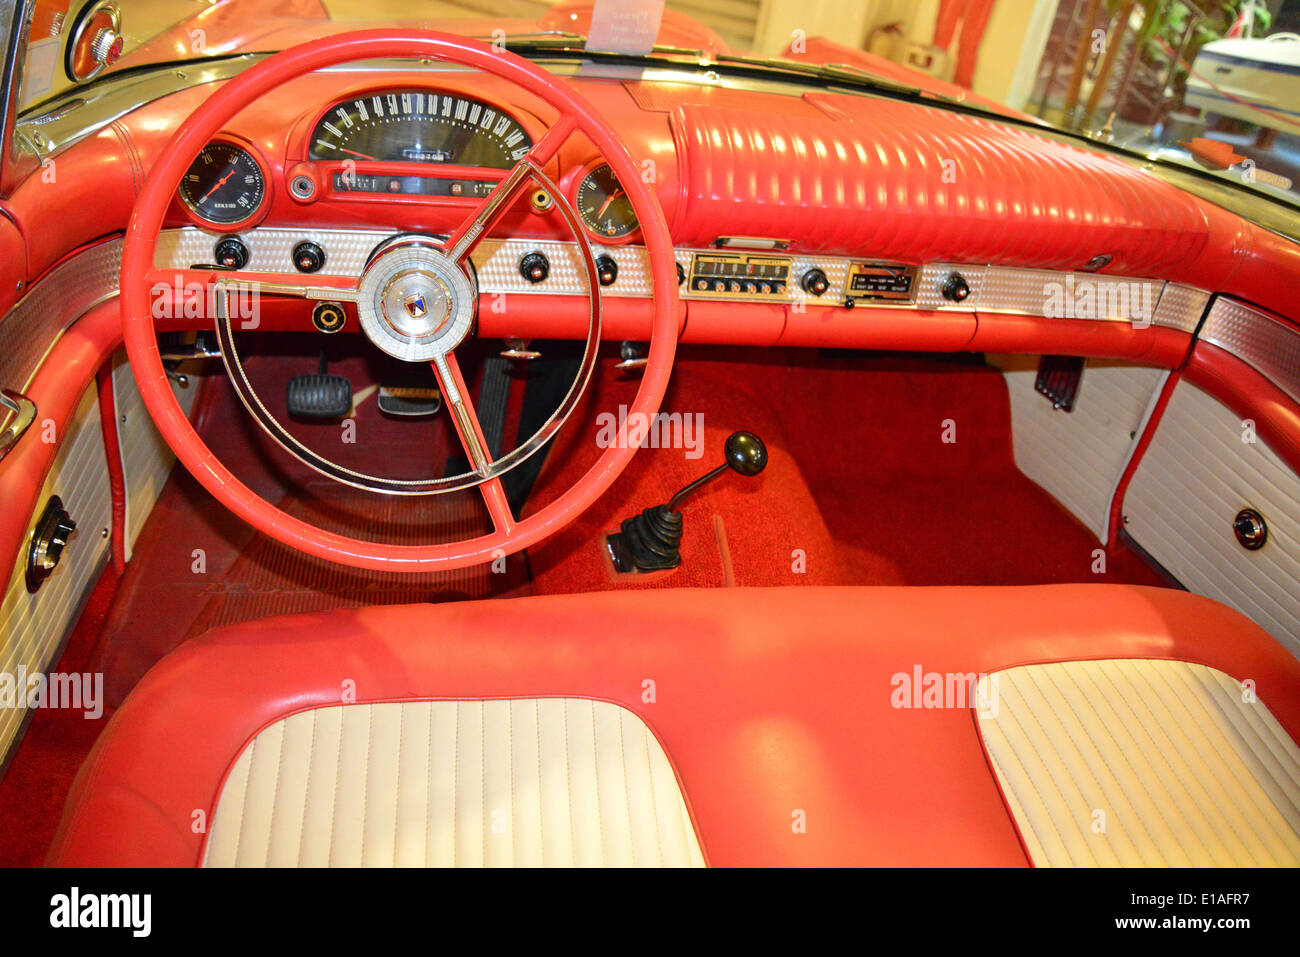 american thunderbird car interior malta classic car museum qawra stock photo royalty free. Black Bedroom Furniture Sets. Home Design Ideas